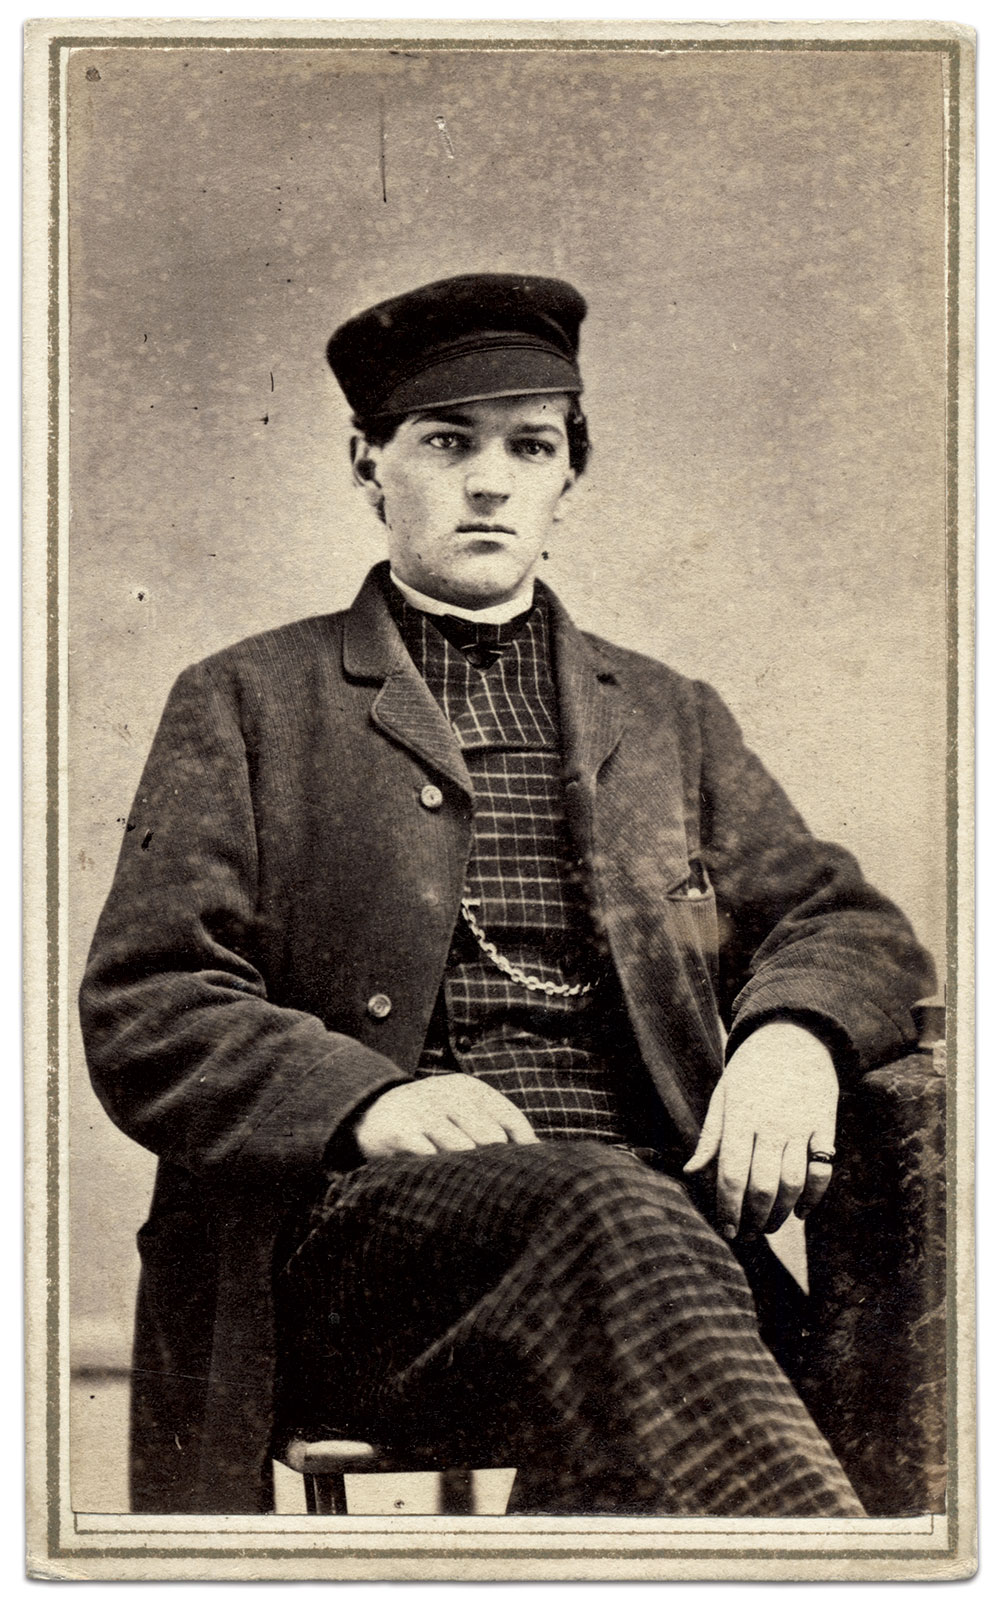 Homer W. Gilbert appears in a civilian sack coat and checkered vest and trousers with cloth cap. On April 10, 1865, he was captured by rebel guerillas near Memphis with five or six other men. He was released unharmed the next day. Carte de visite by H. G. Taylor of Adams, N.Y. Michael J. McAfee Collection.